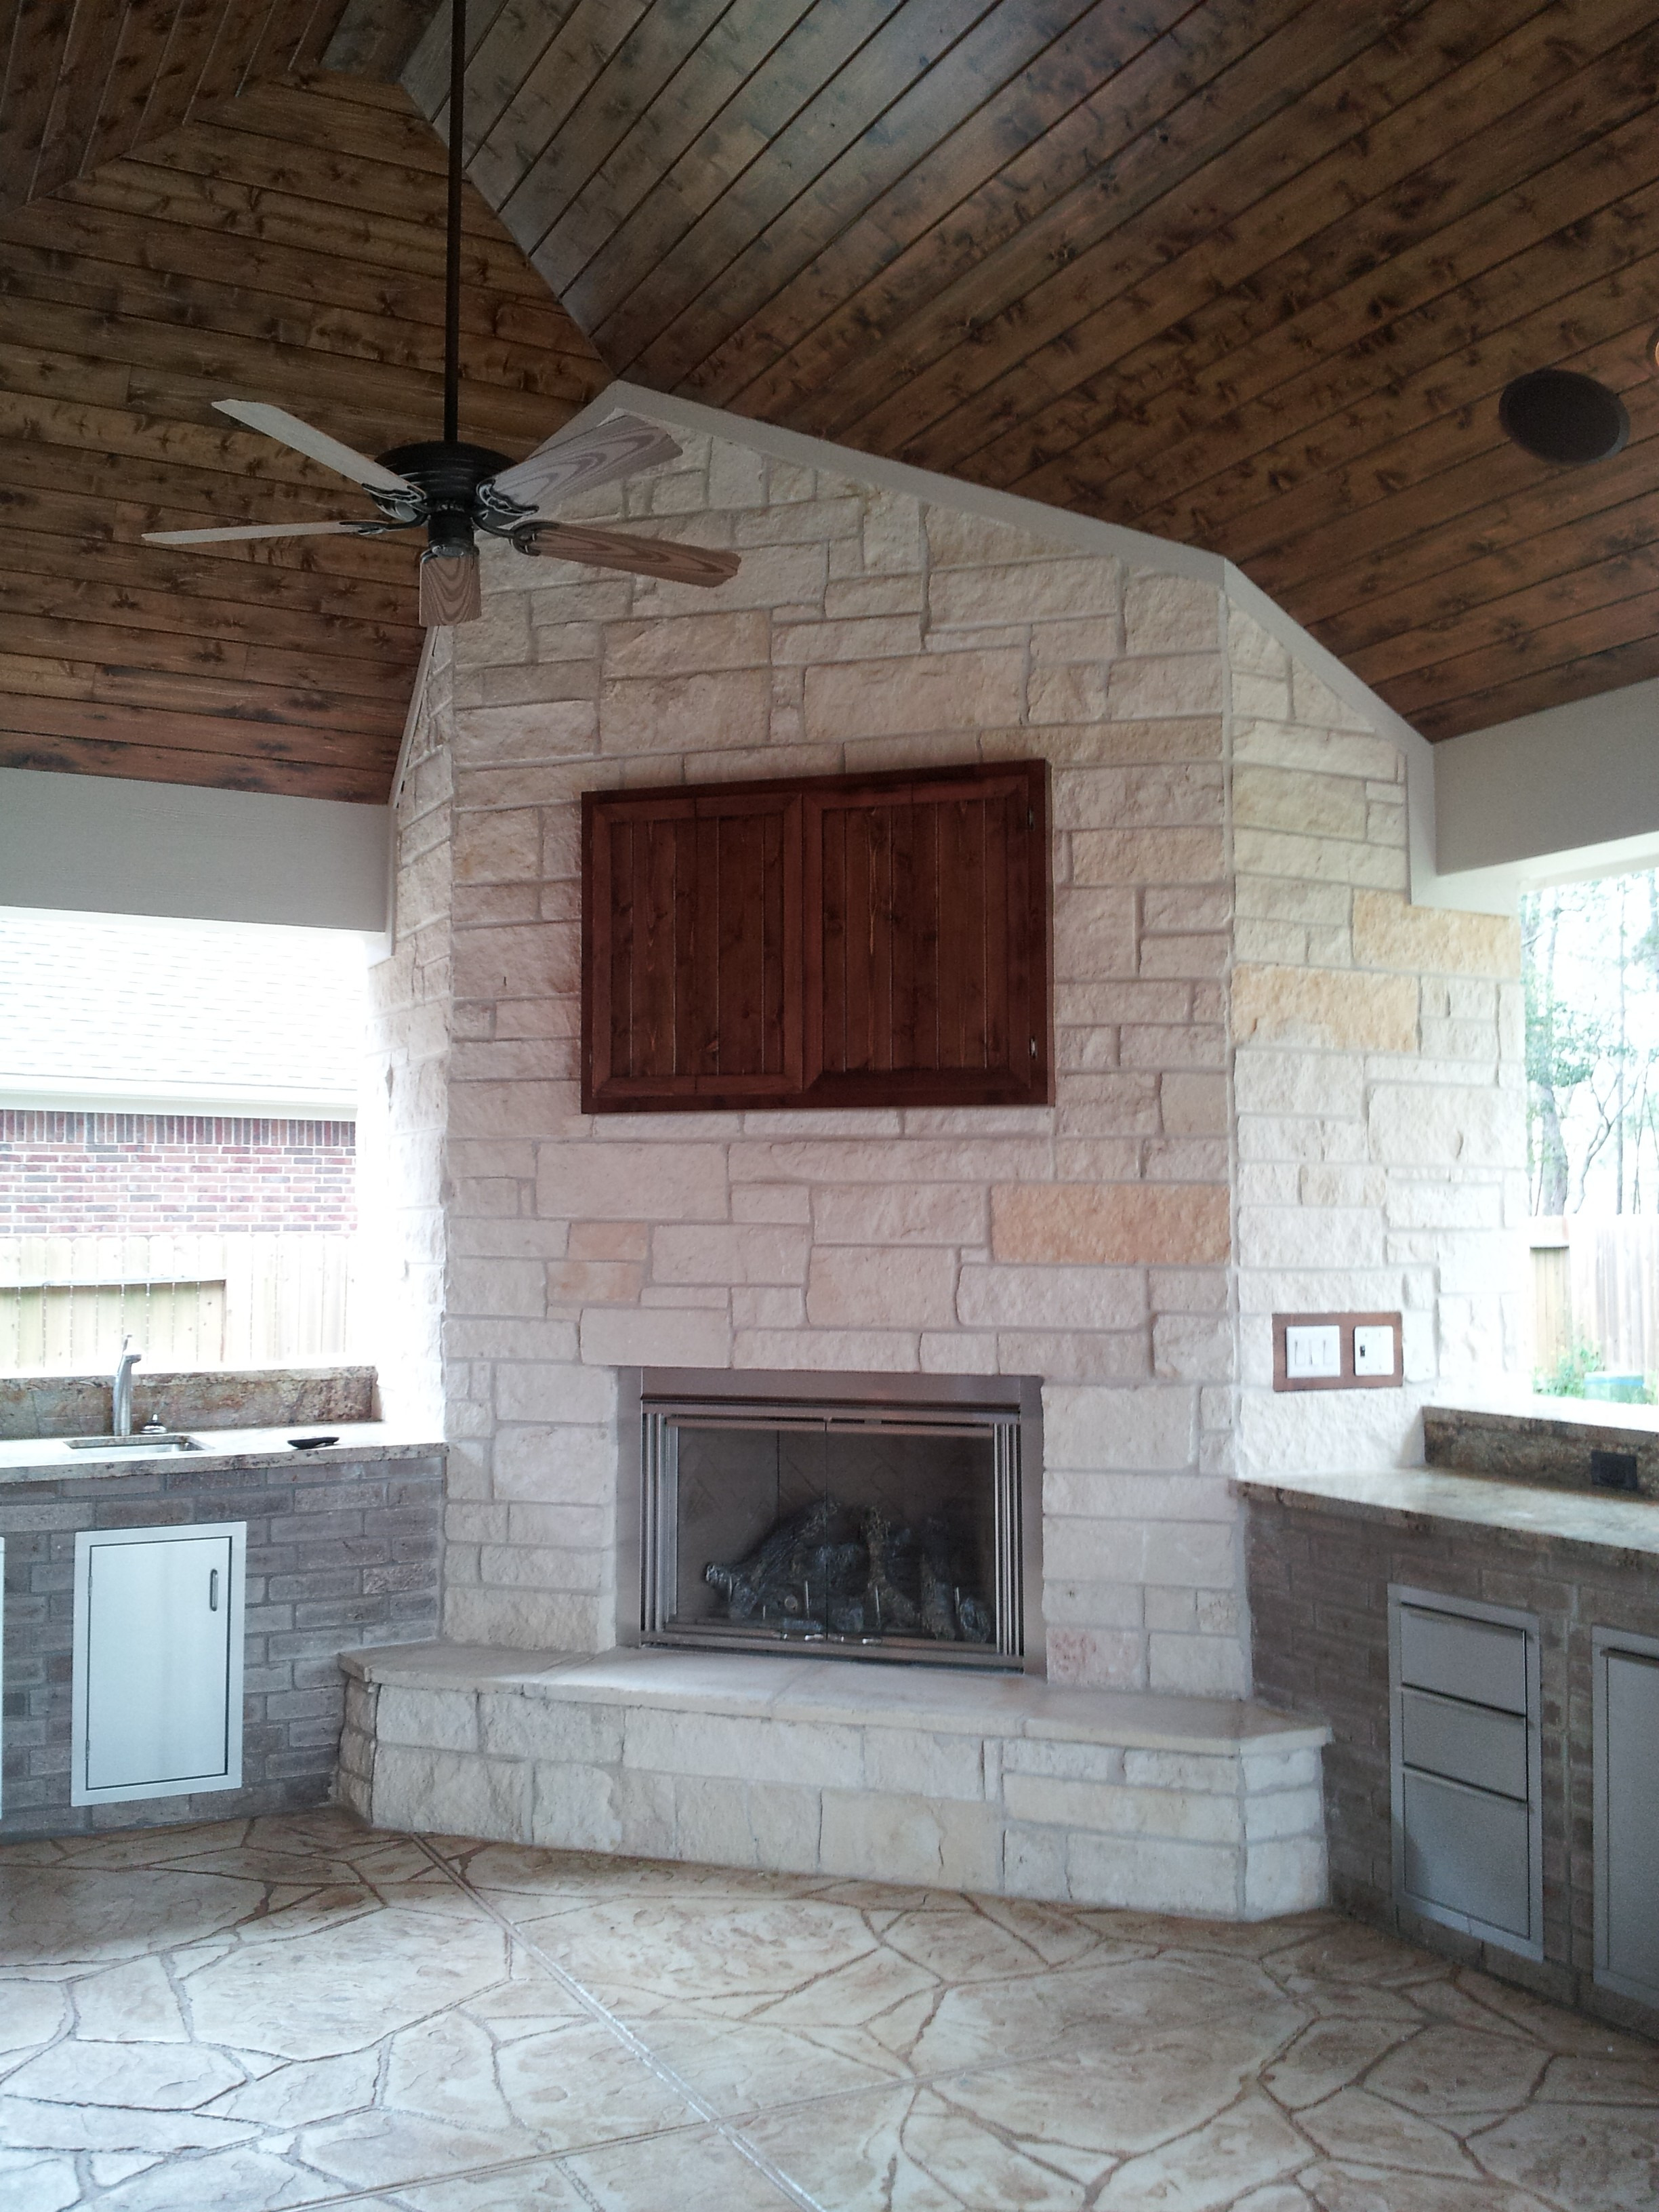 wooden outdoor tv cabinets above the outdoor fireplace for exterior design idea outdoor liquor cabinet outdoor television reviews stainless steel cabinets for outdoor kitchens stainless steel outdoor